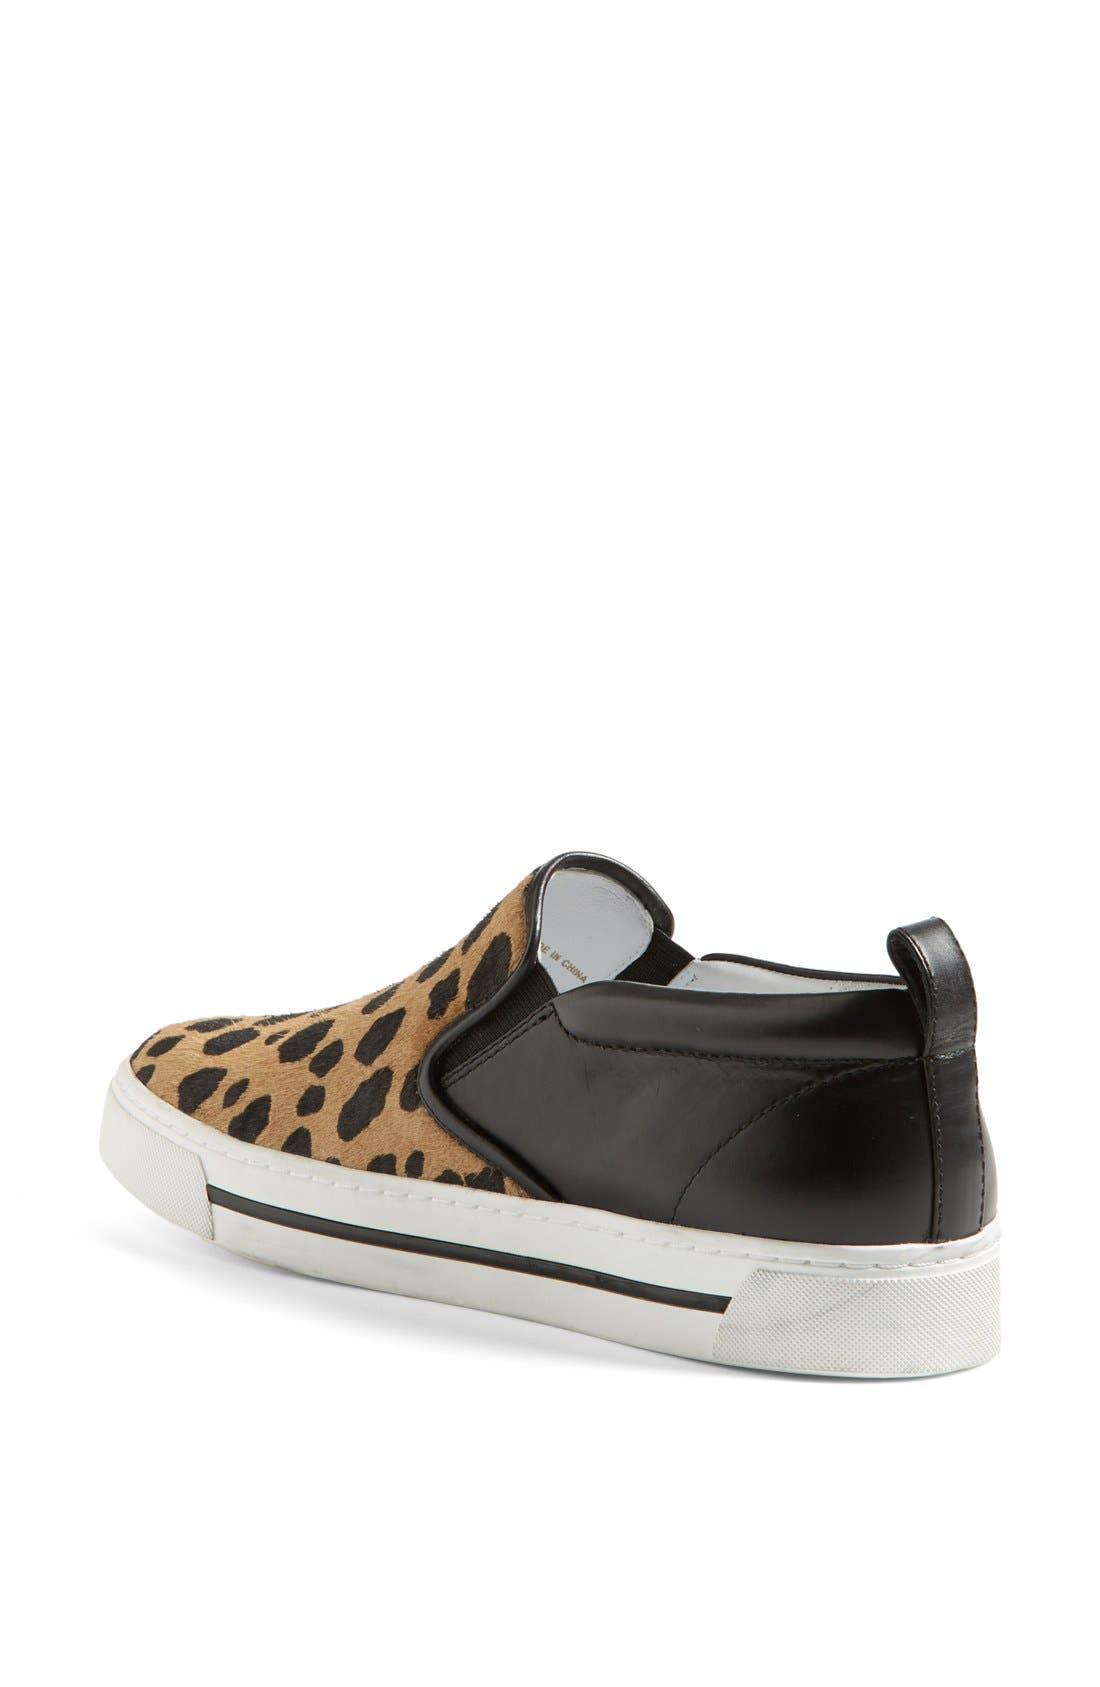 Alternate Image 2  - MARC BY MARC JACOBS Leather & Calf Hair Slip-On Sneaker